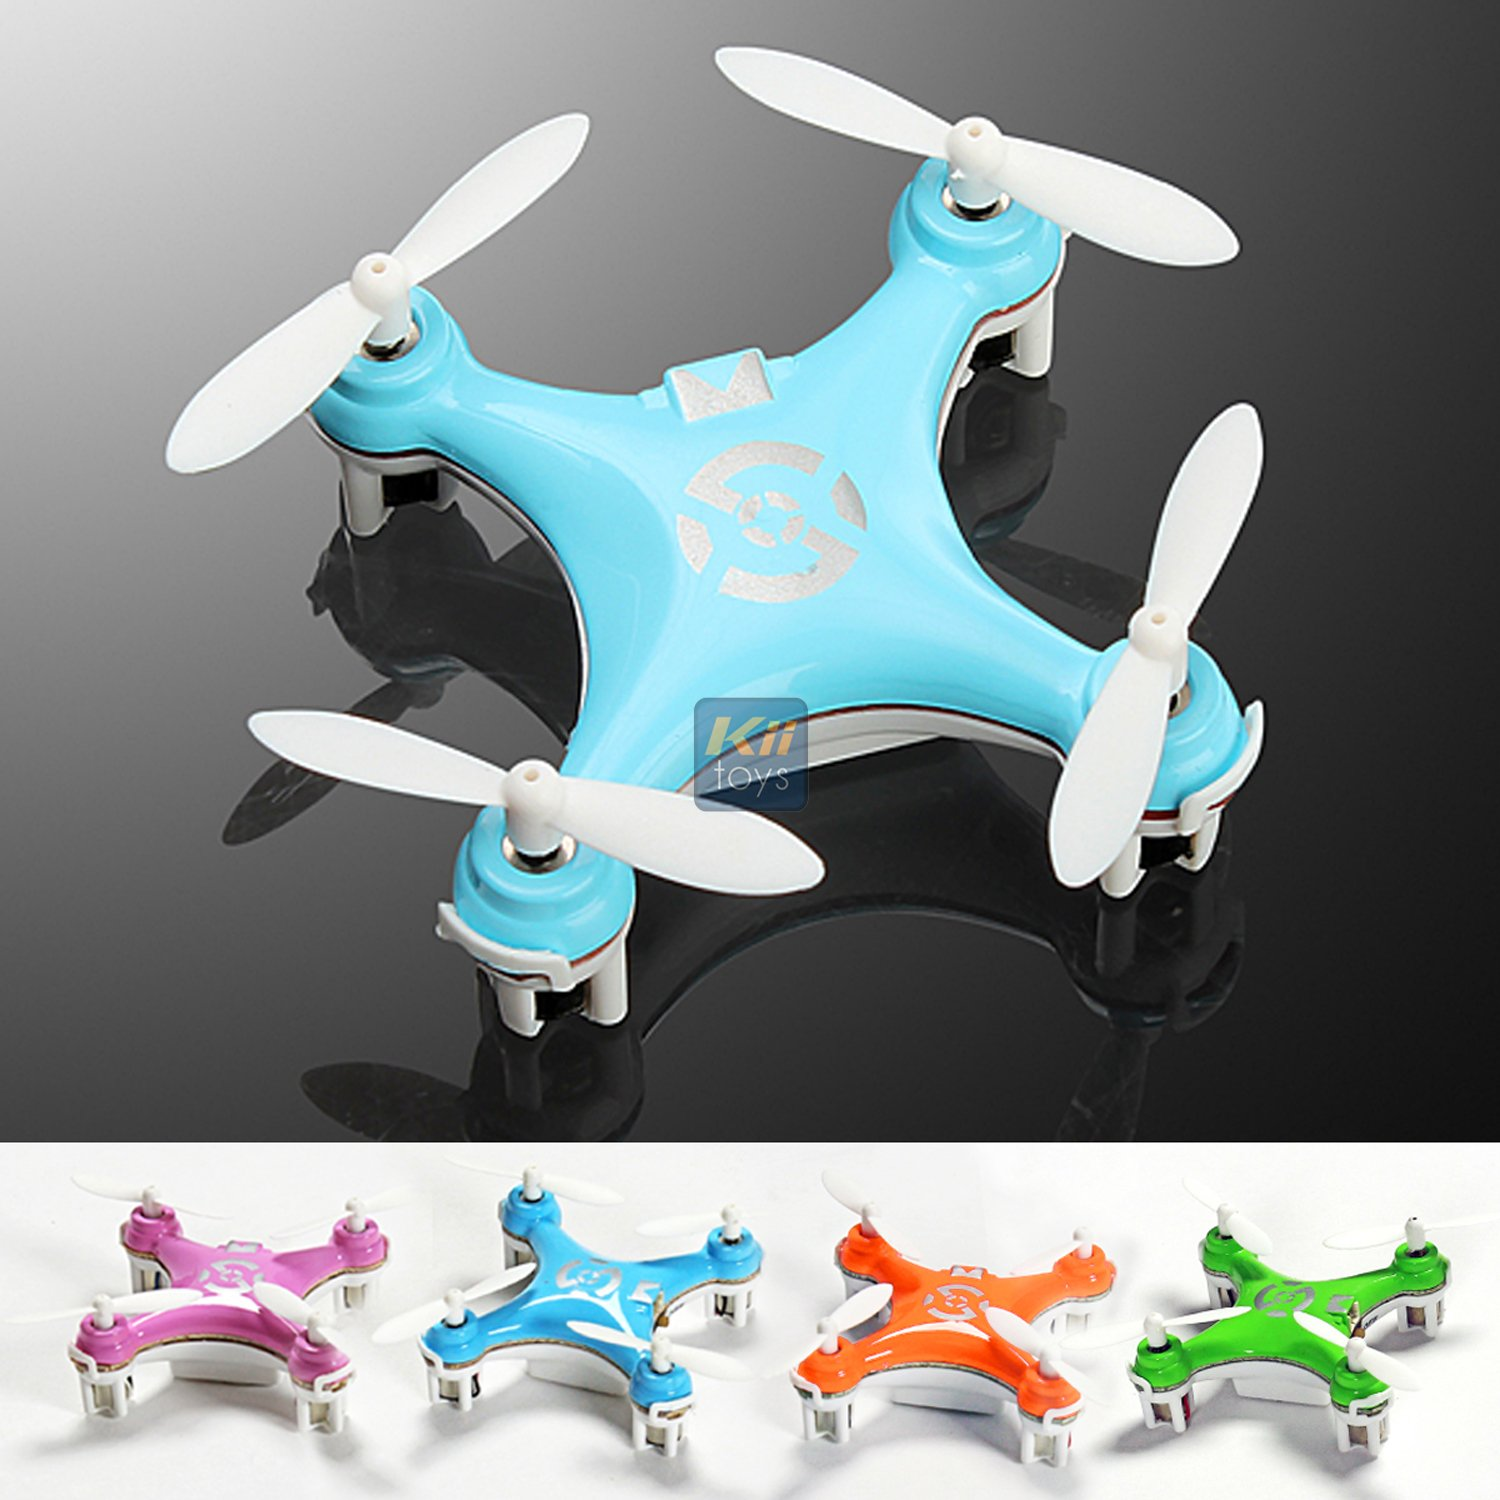 Amazon KiiToys Quadcopter Drone RC Helicopter Quad Copter Toy